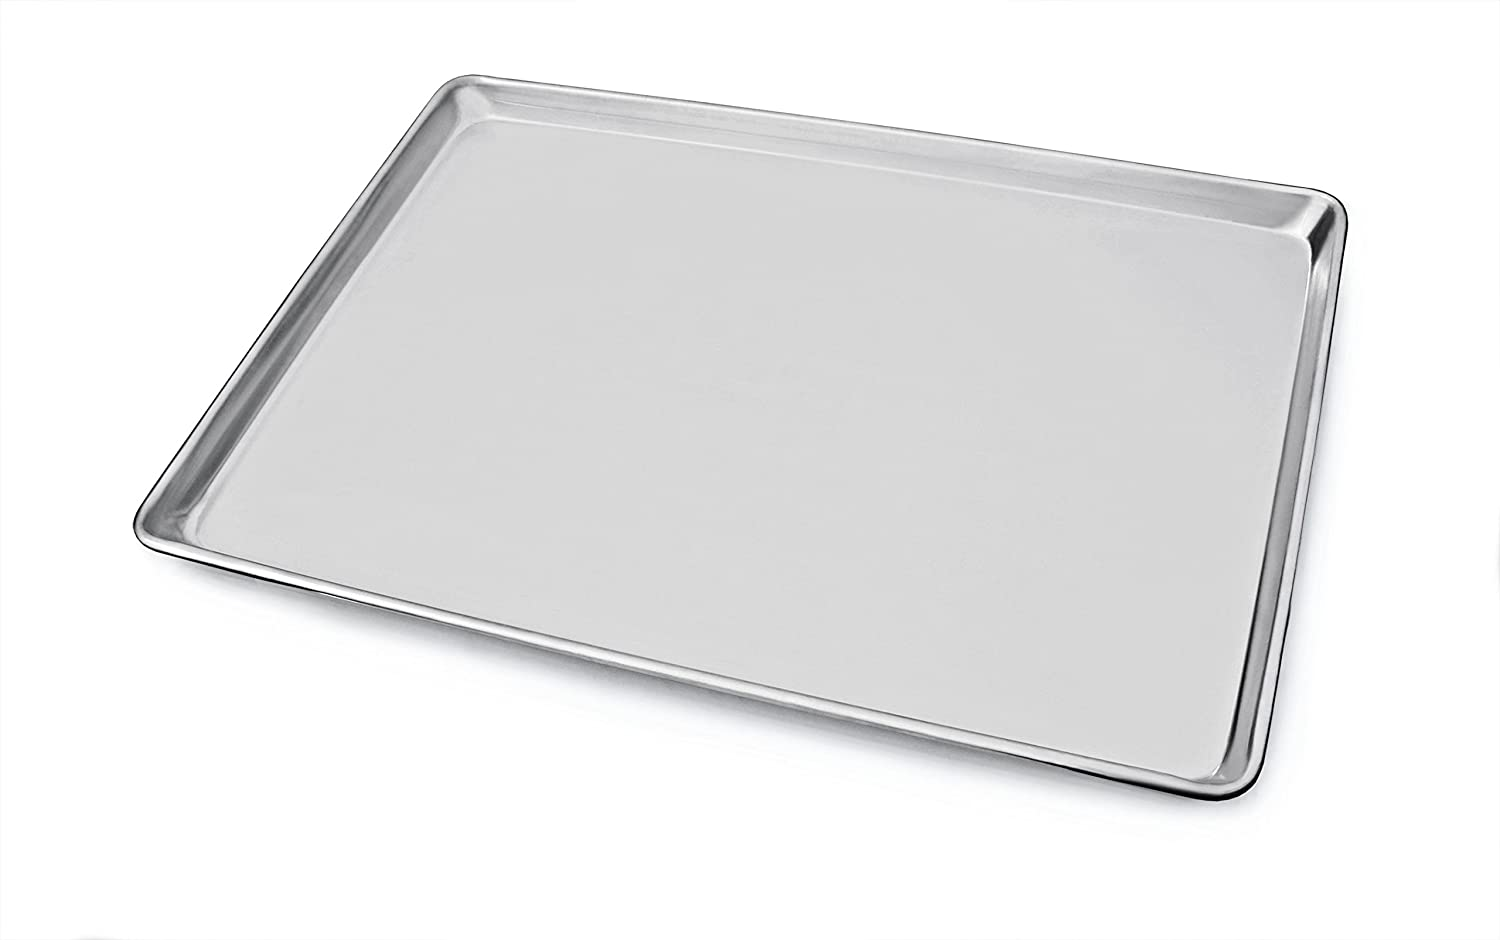 """New Star Foodservice 36923 Commercial-Grade 18-Gauge Aluminum Sheet Pan/Bun Pan, 18"""" L x 26"""" W x 1"""" H (Full Size)